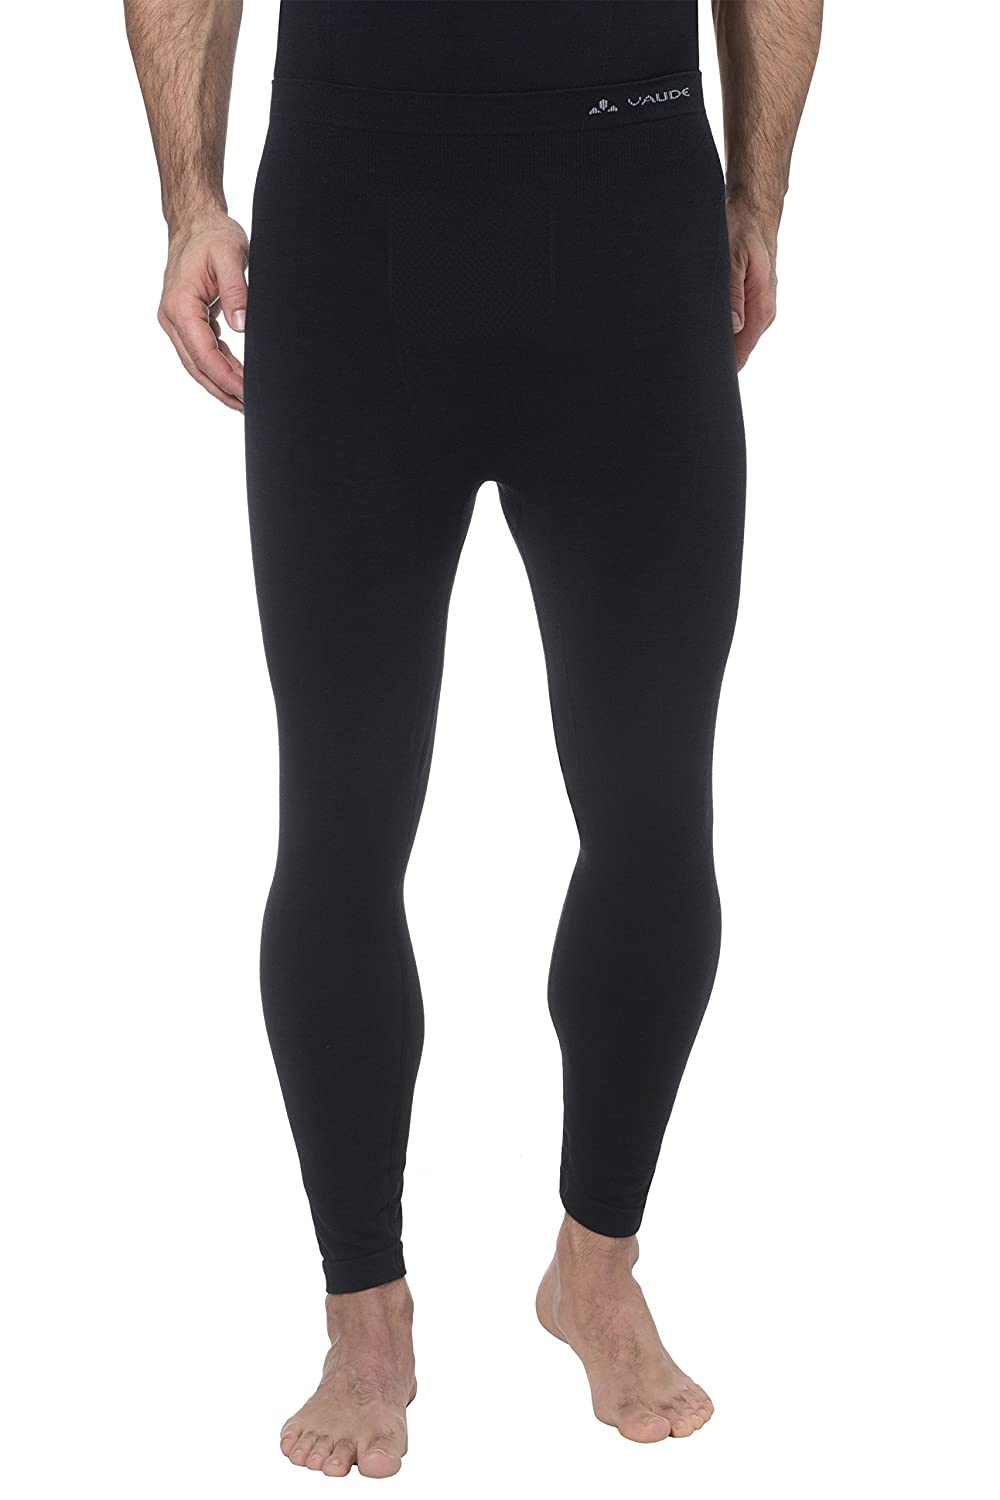 VAUDE Herren Hose Seamless Tights